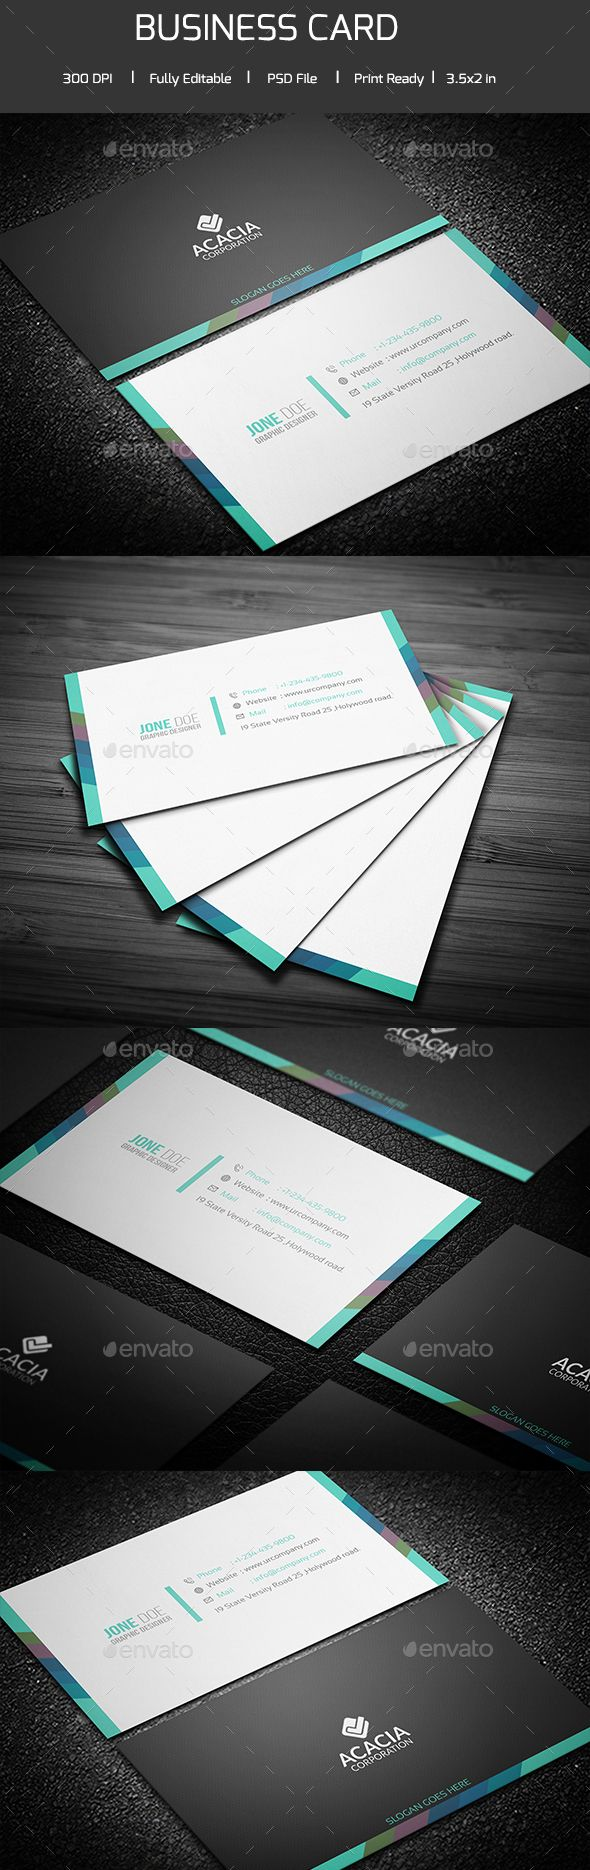 3023 best nice business cards on pinterest images on pinterest simple and clean business card v 04 reheart Image collections